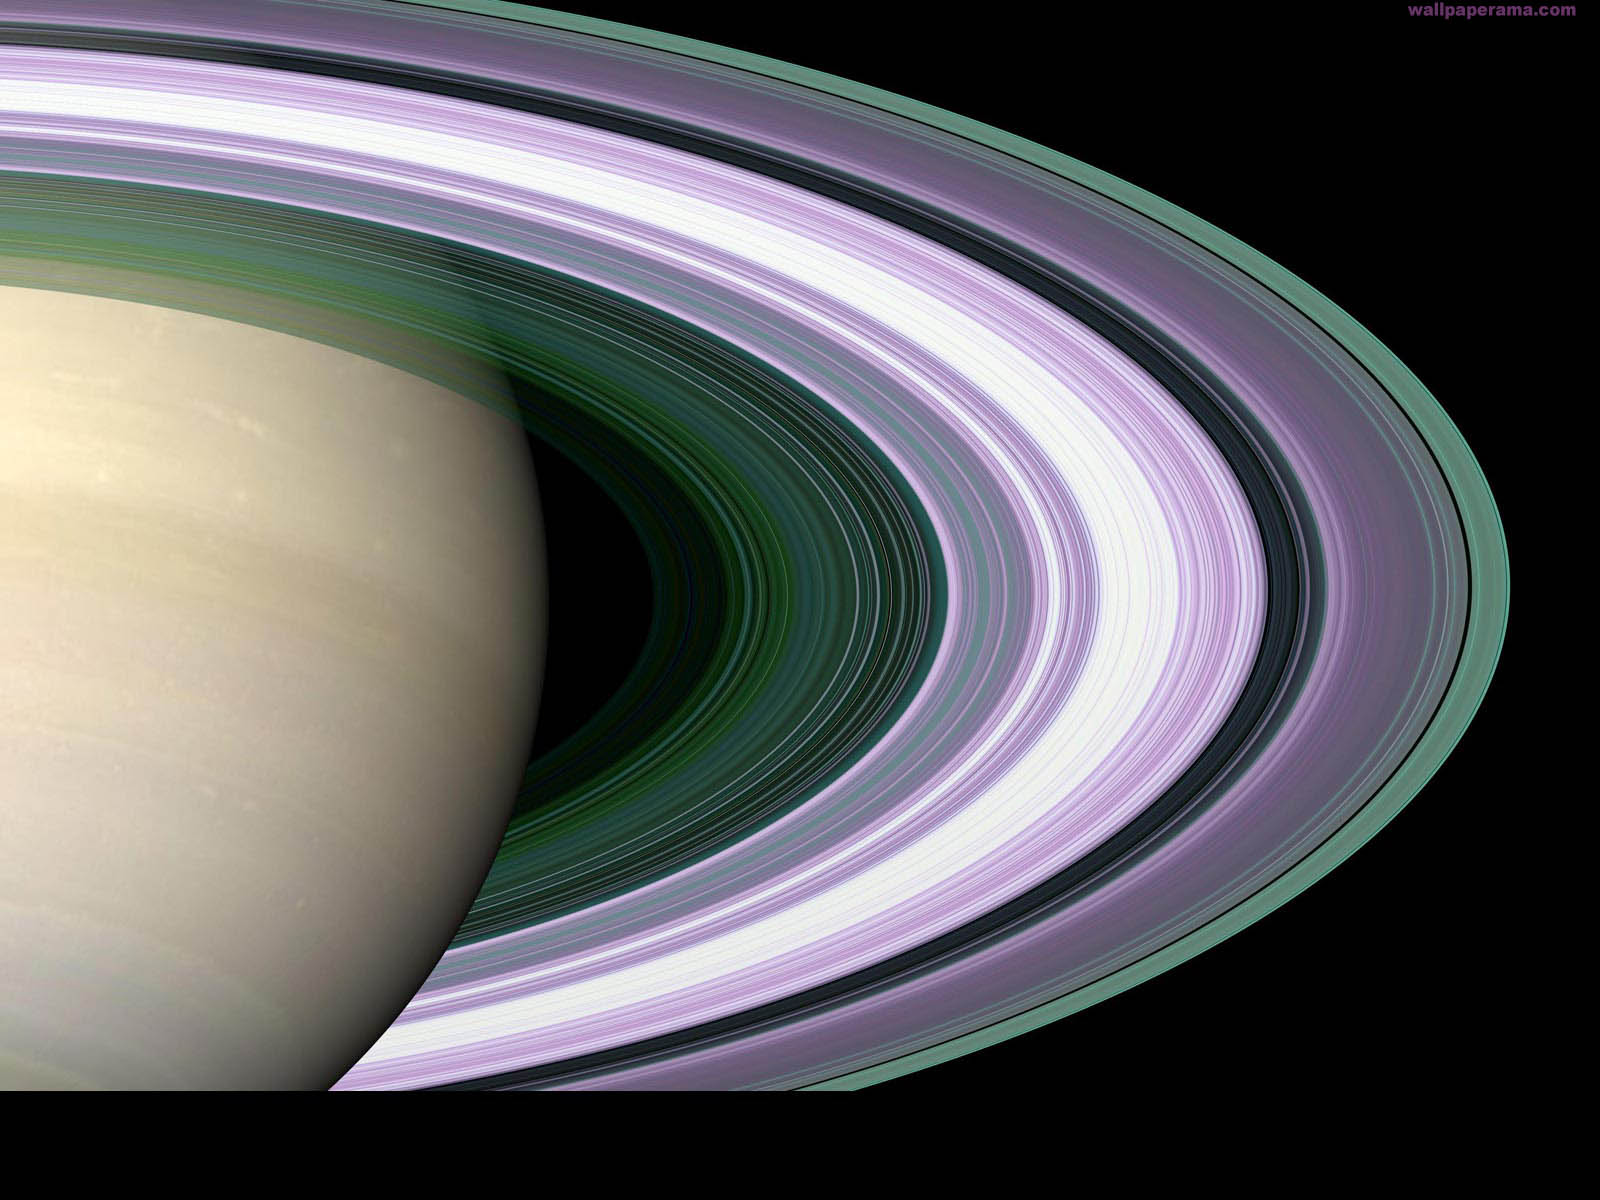 Saturn Rings Wallpaper